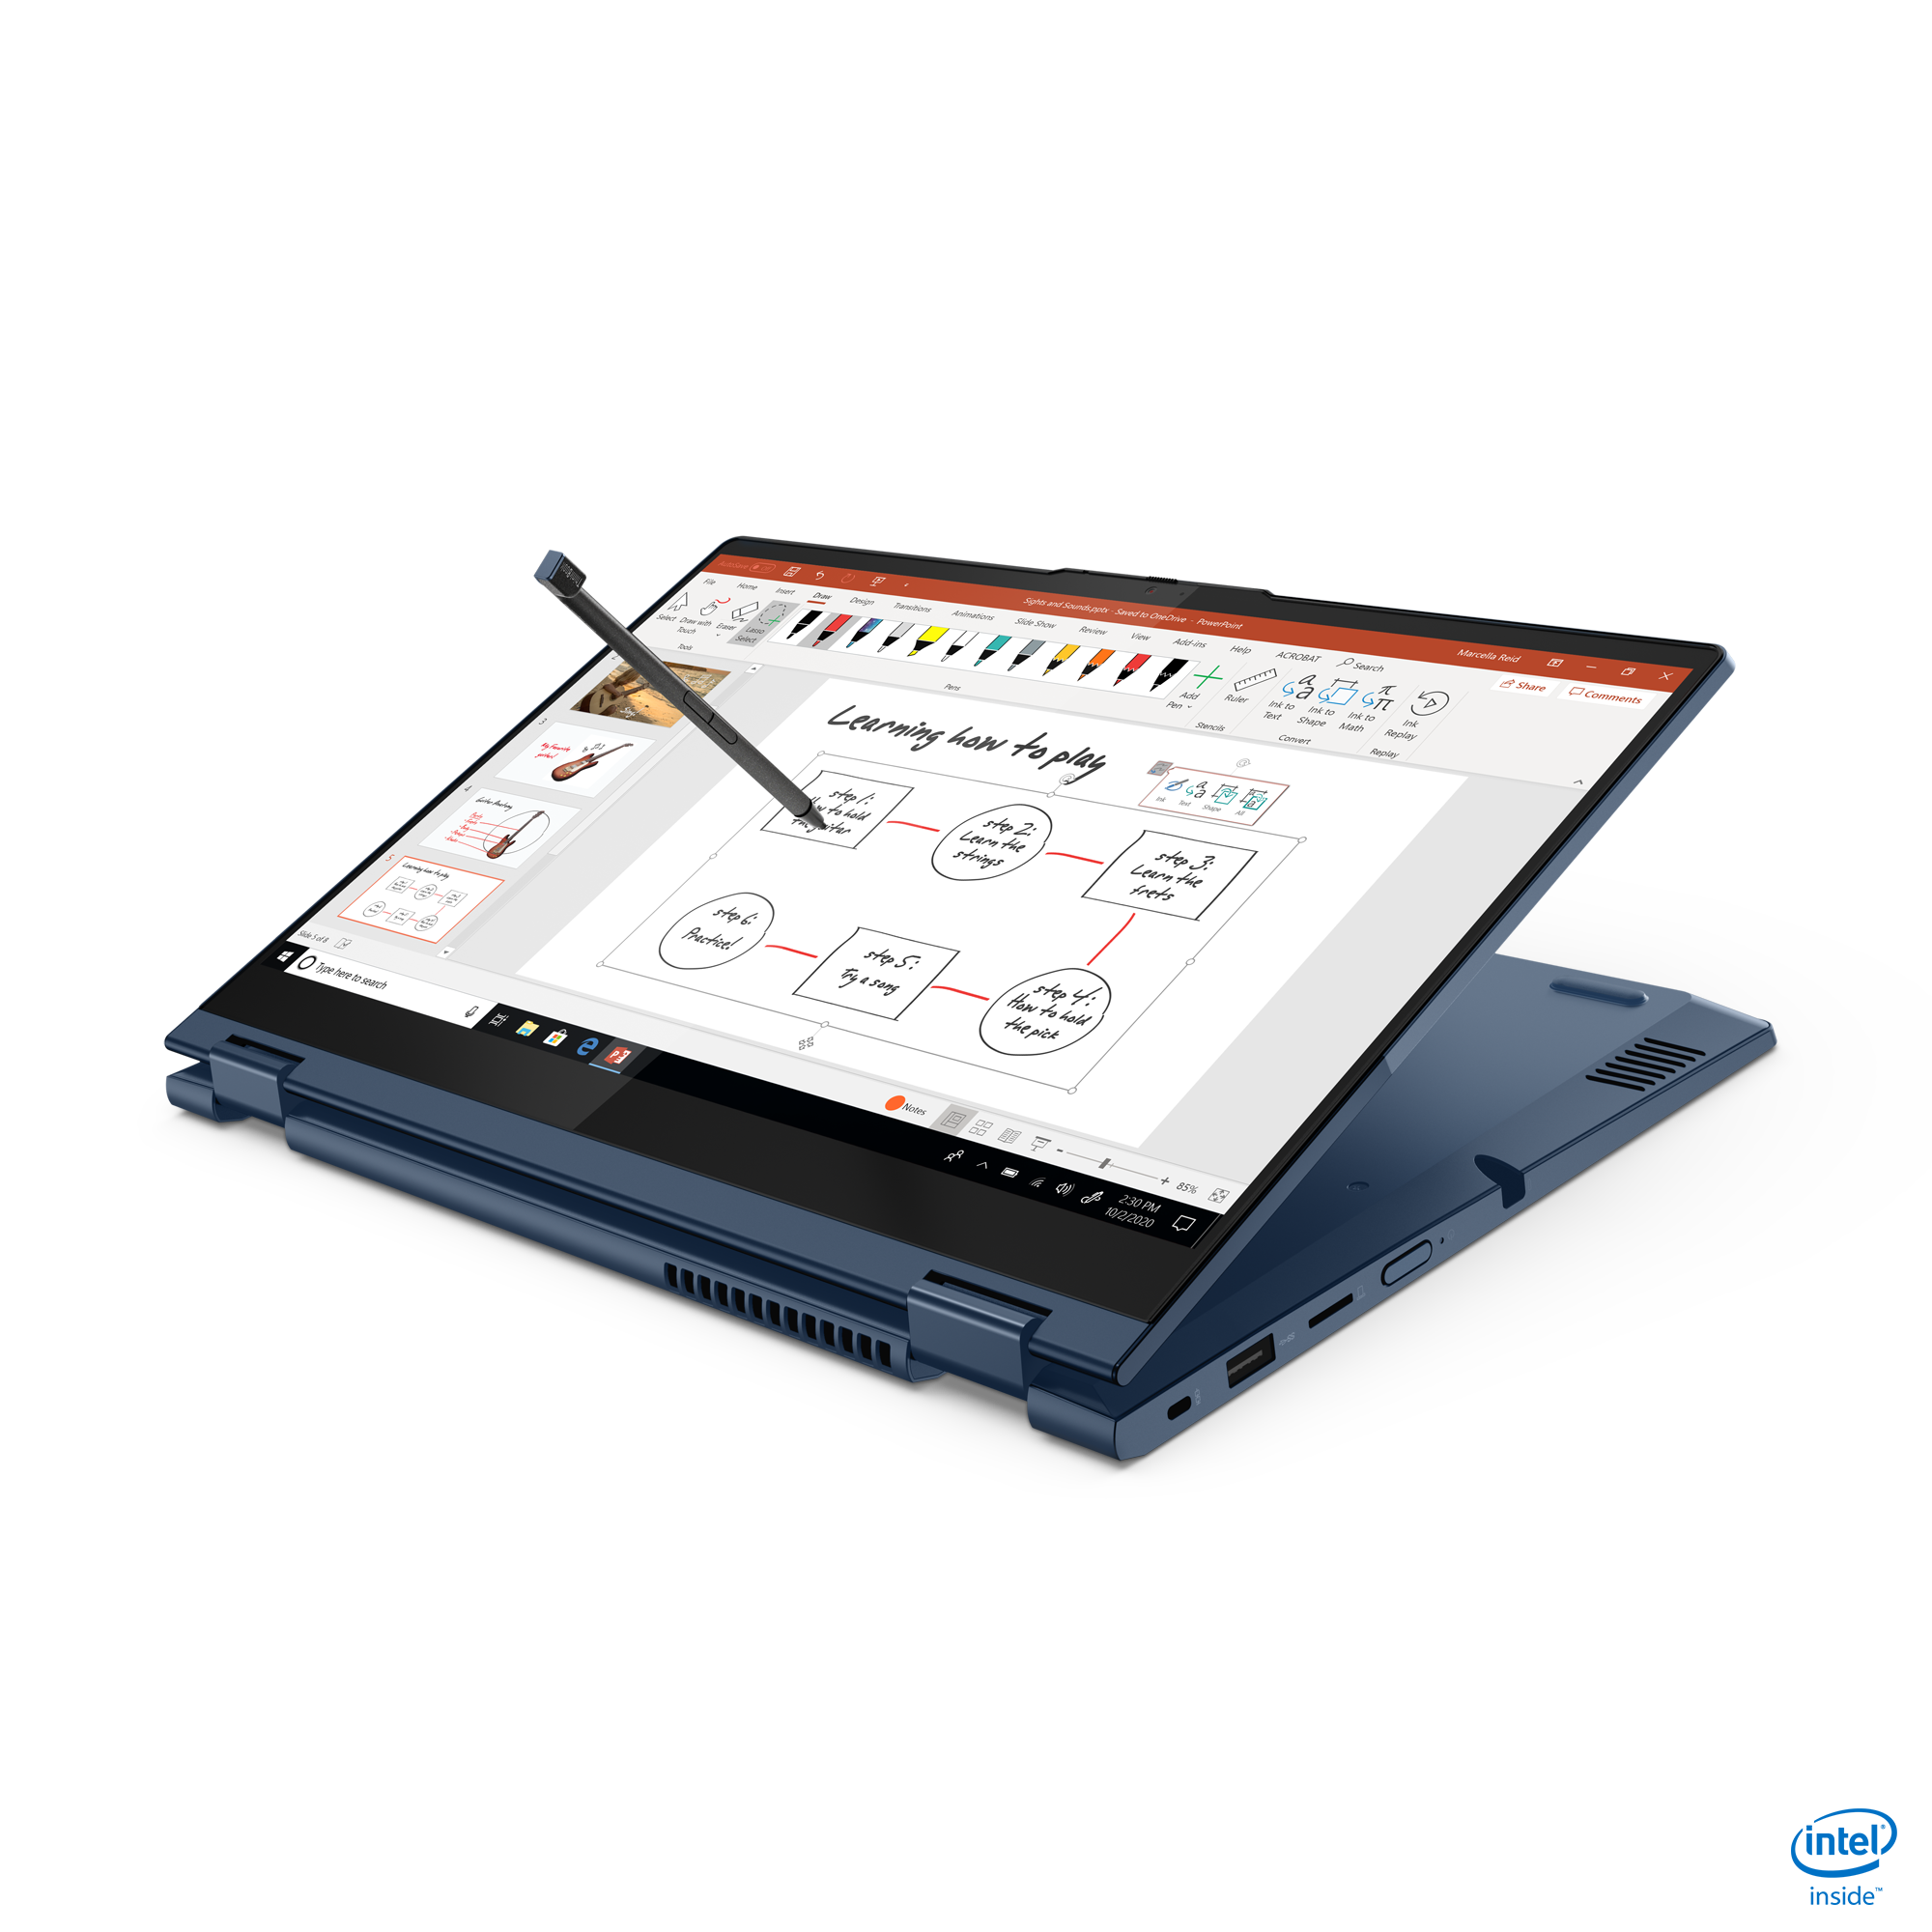 04 Thinkbook 14s Yoga Hero Tablet With Pen